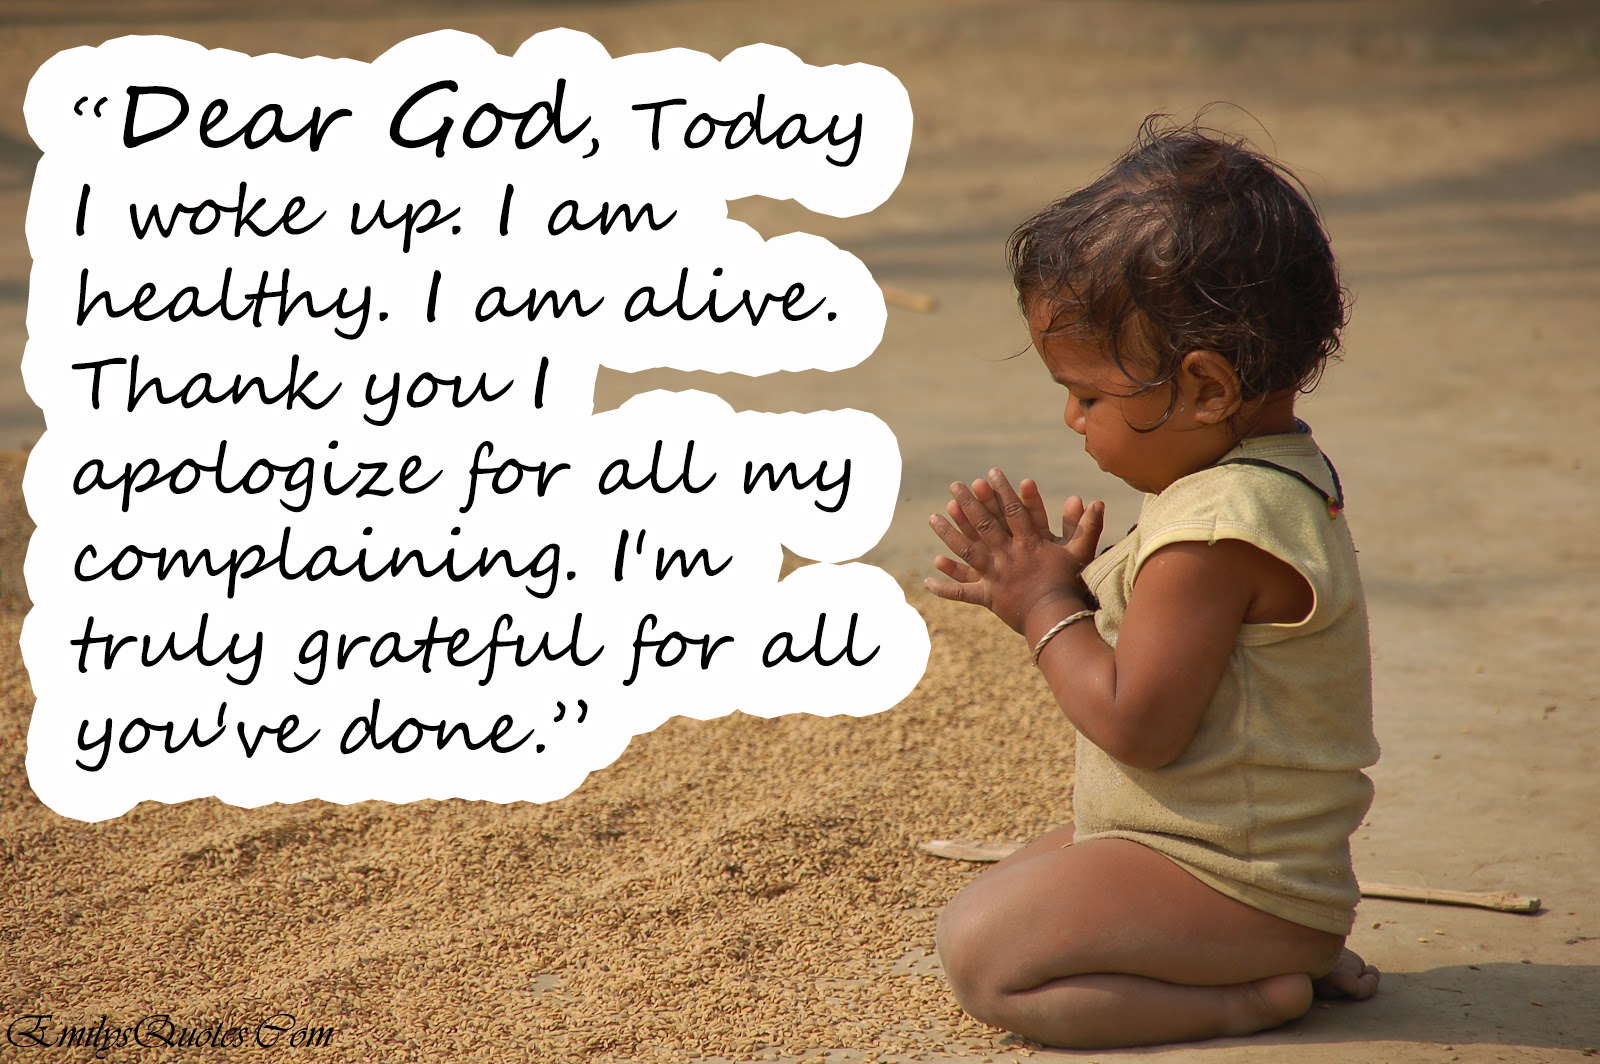 Thanking God Quotes Dear God I'm Truly Grateful For All You've Done Small Acts Of